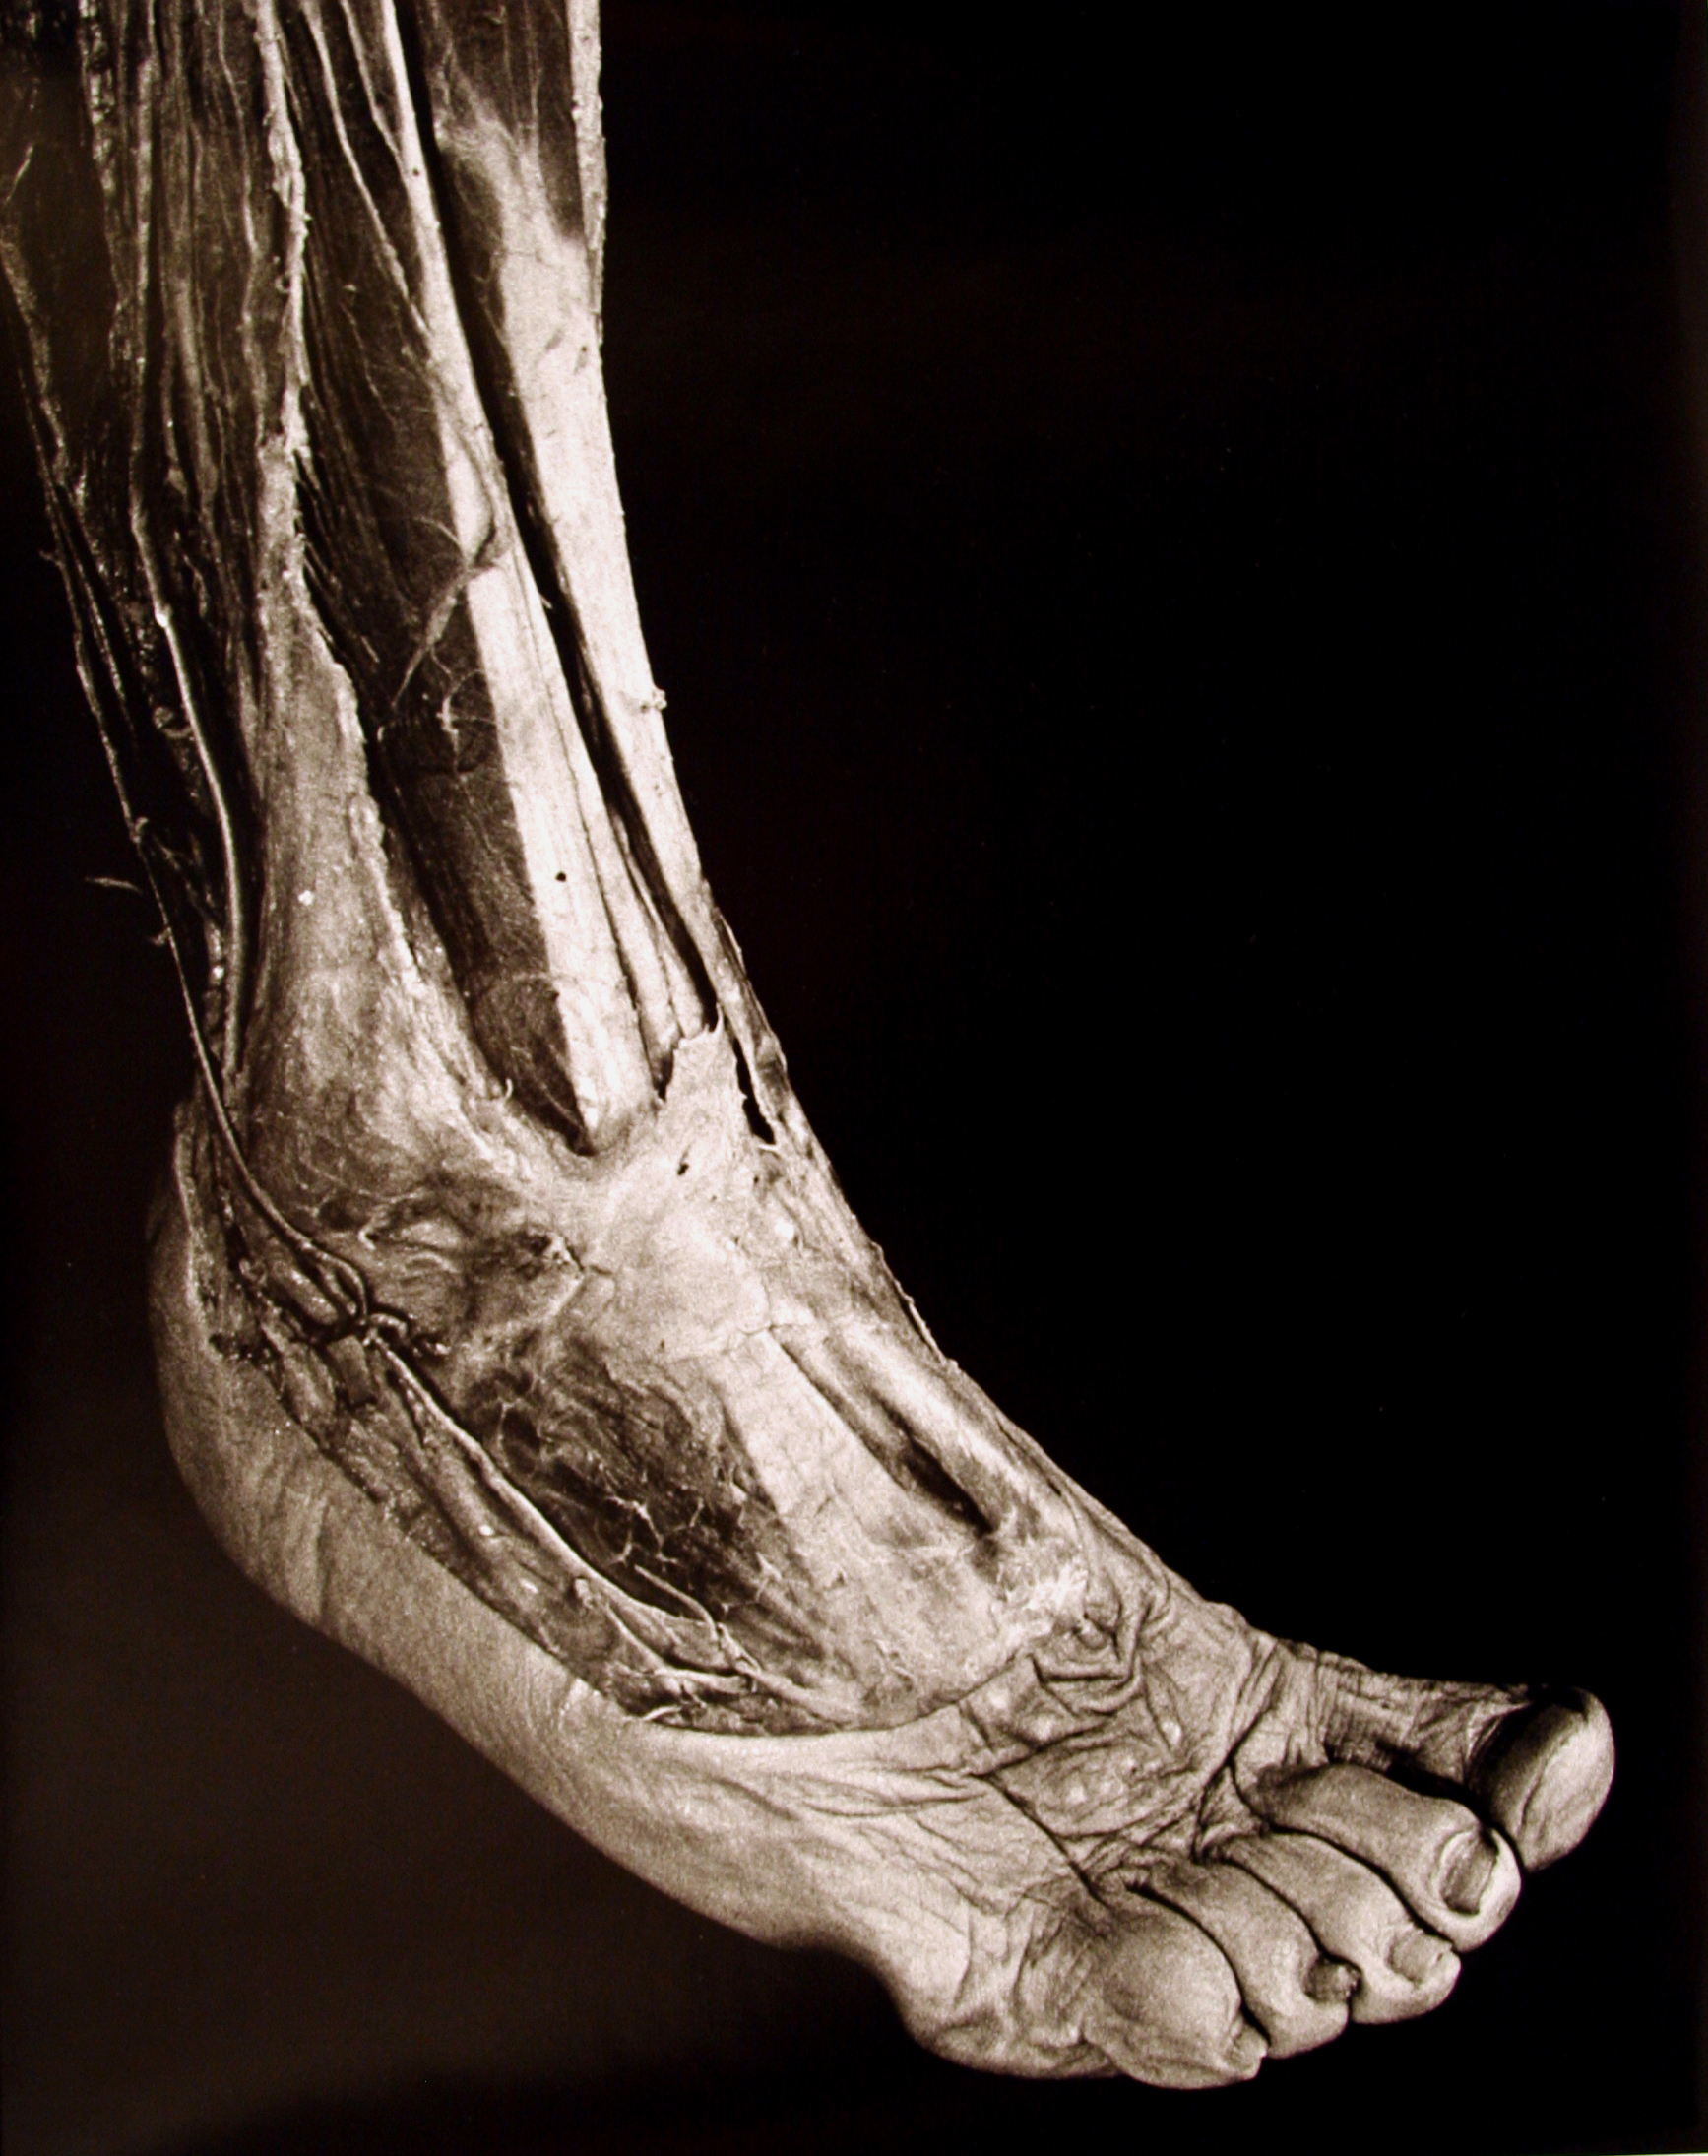 Anatomical Series